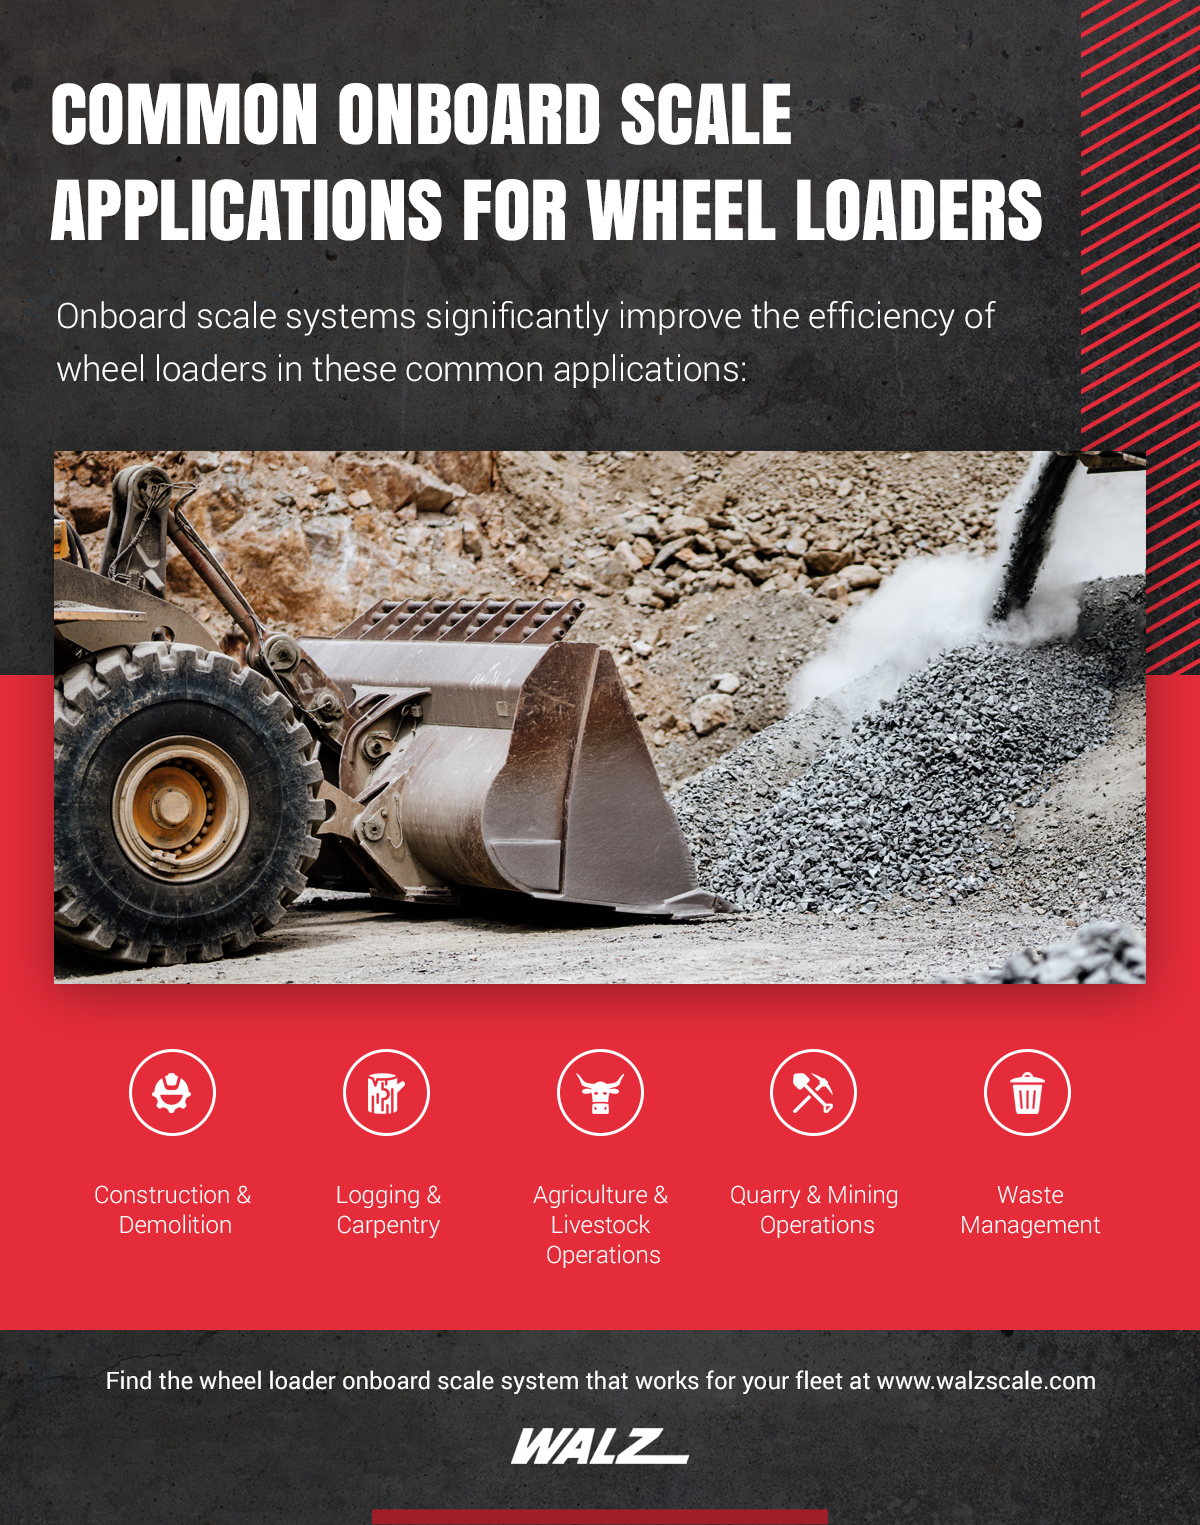 Common-Onboard-Scale-Applications-for-Wheel-Loaders-infographic